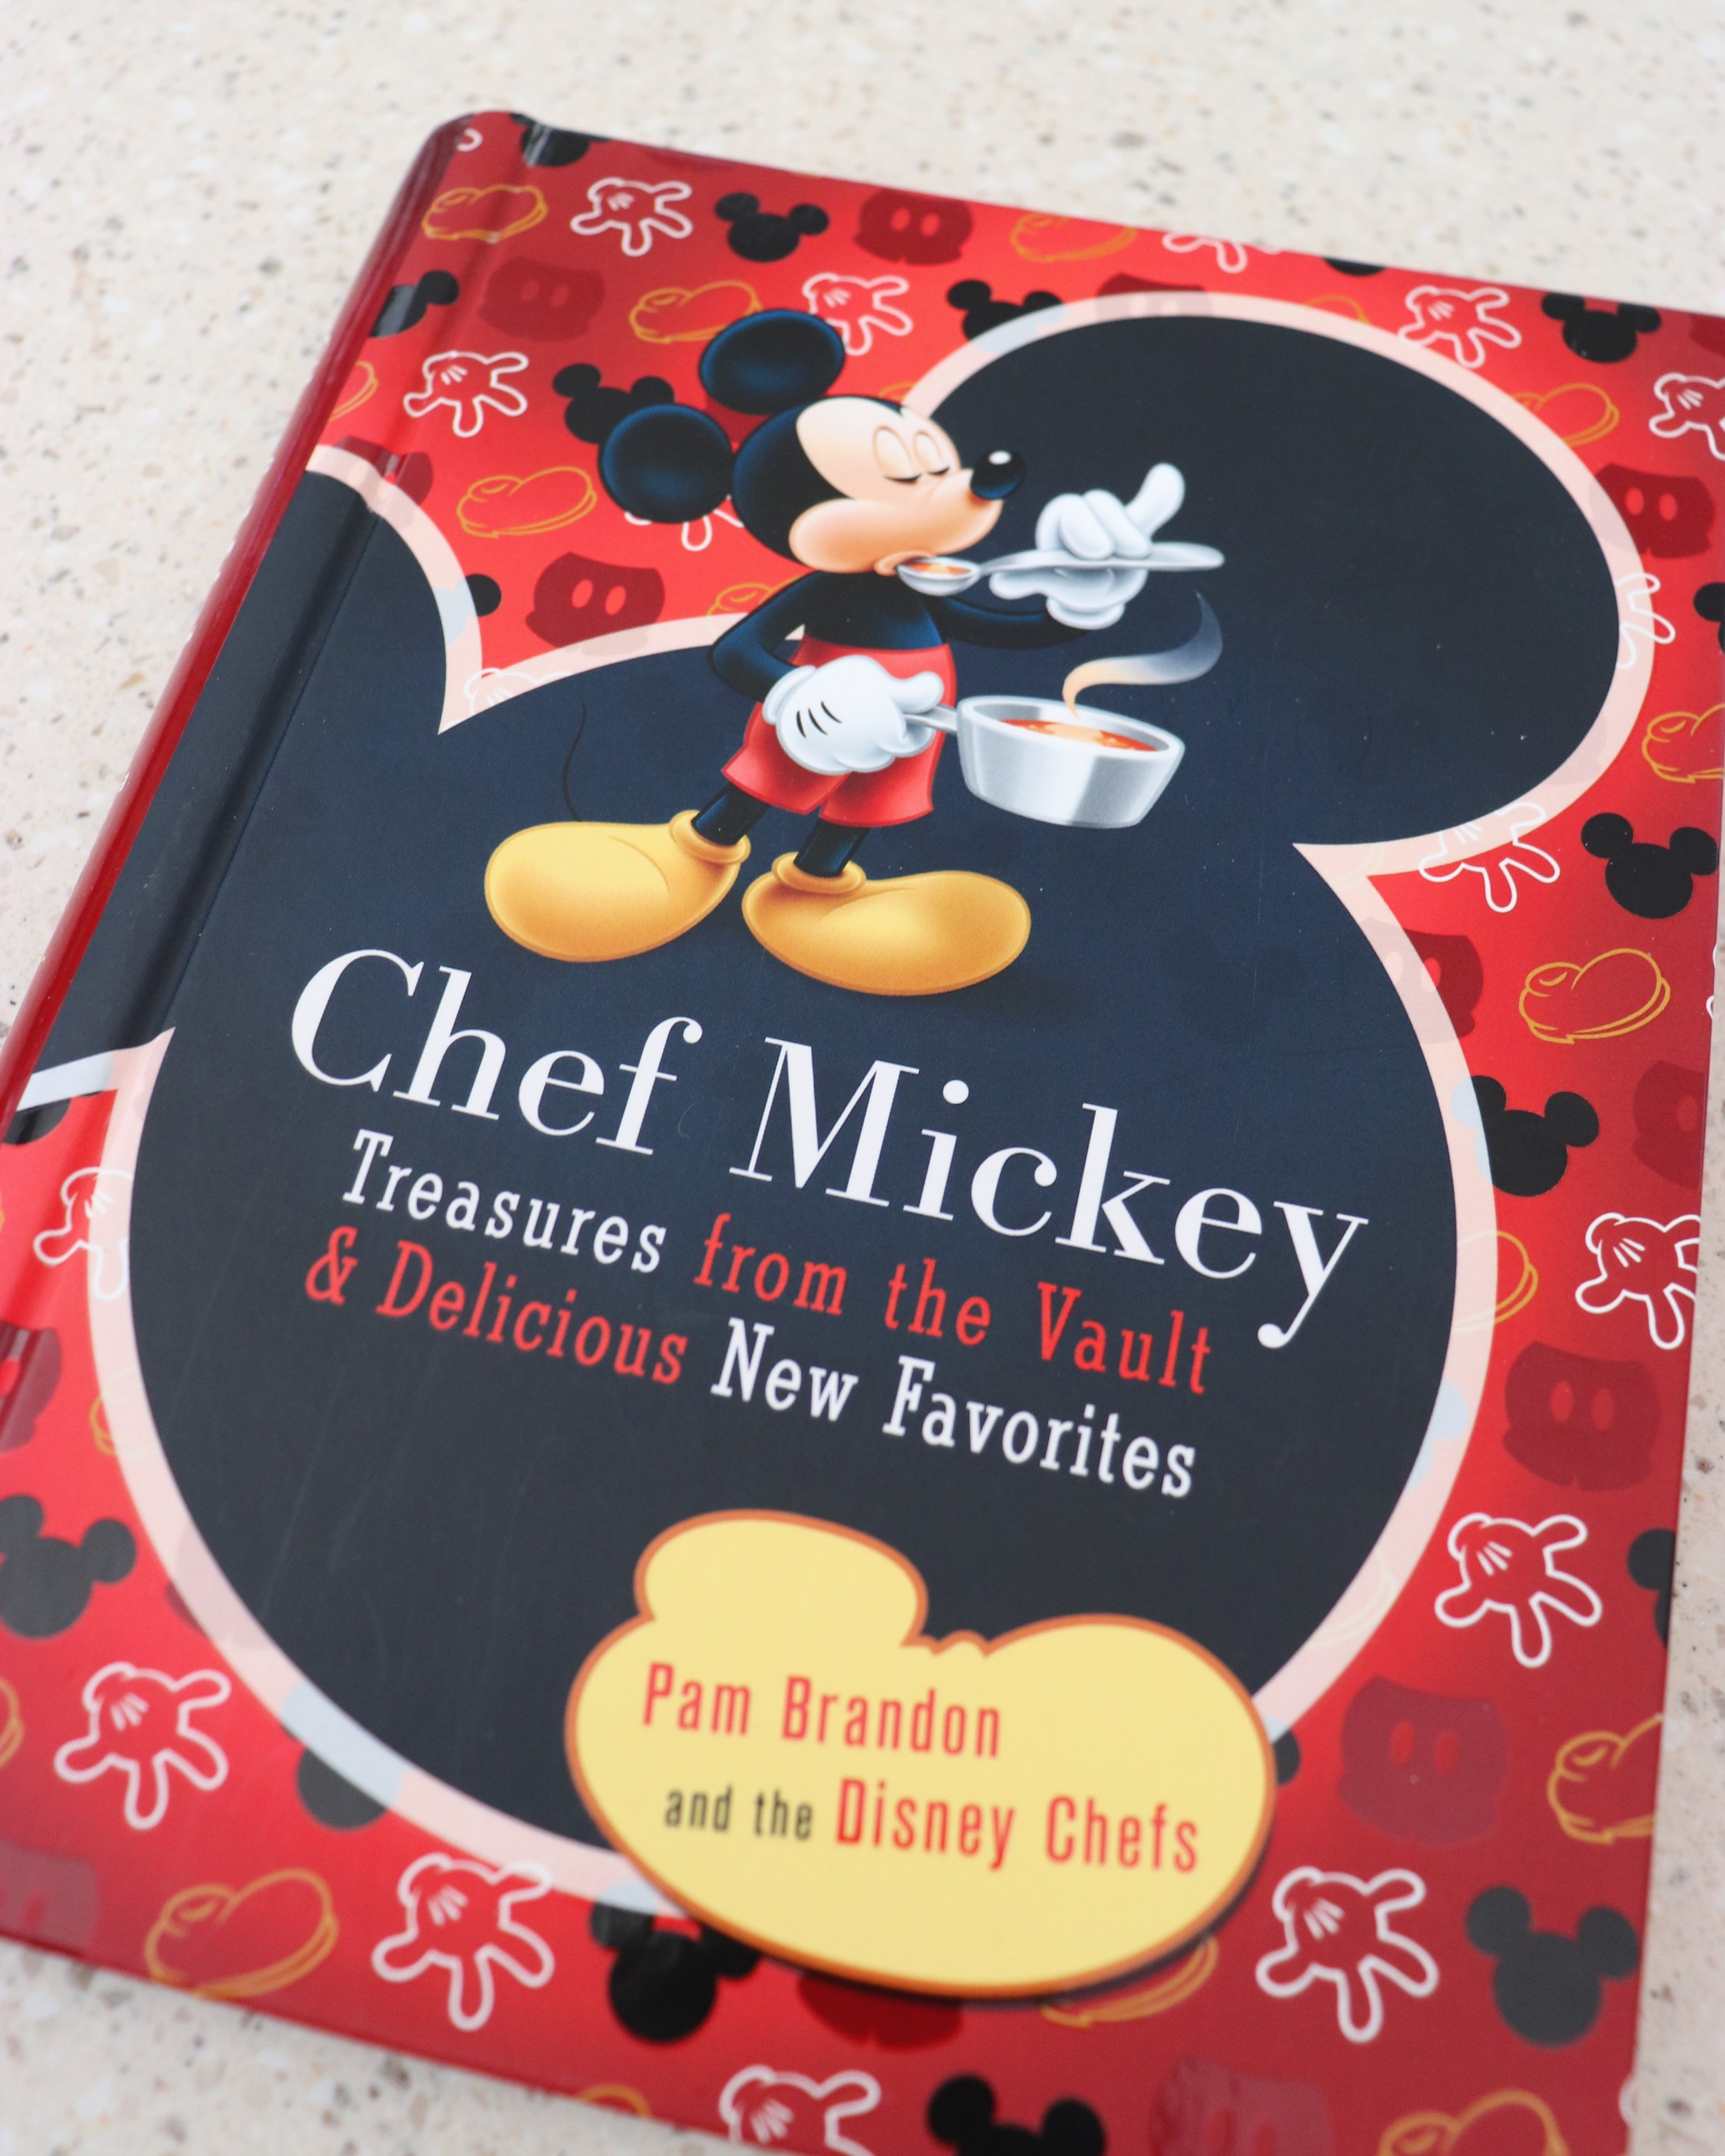 This cook book features tons of fun Disney recipes.